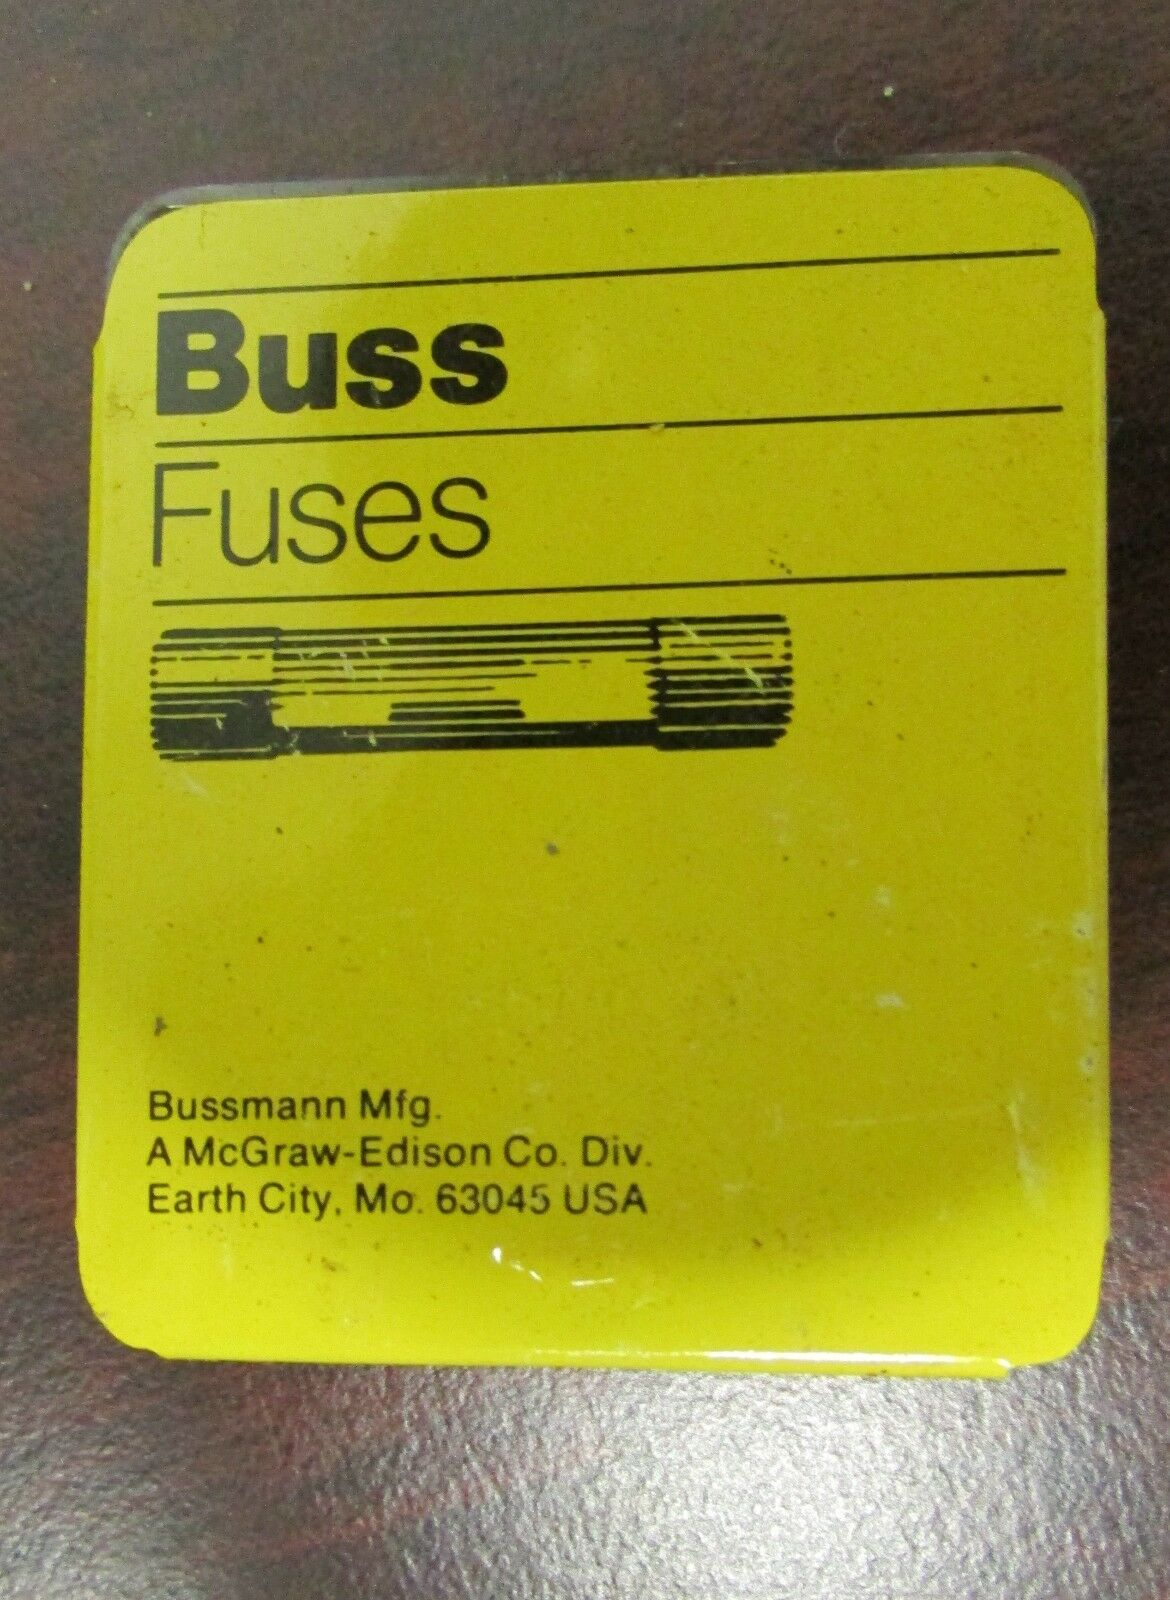 Bussmann Buss 5 Amp Fuse Box Of Agc 1 4 500 Picclick Edison 3only 2 Available